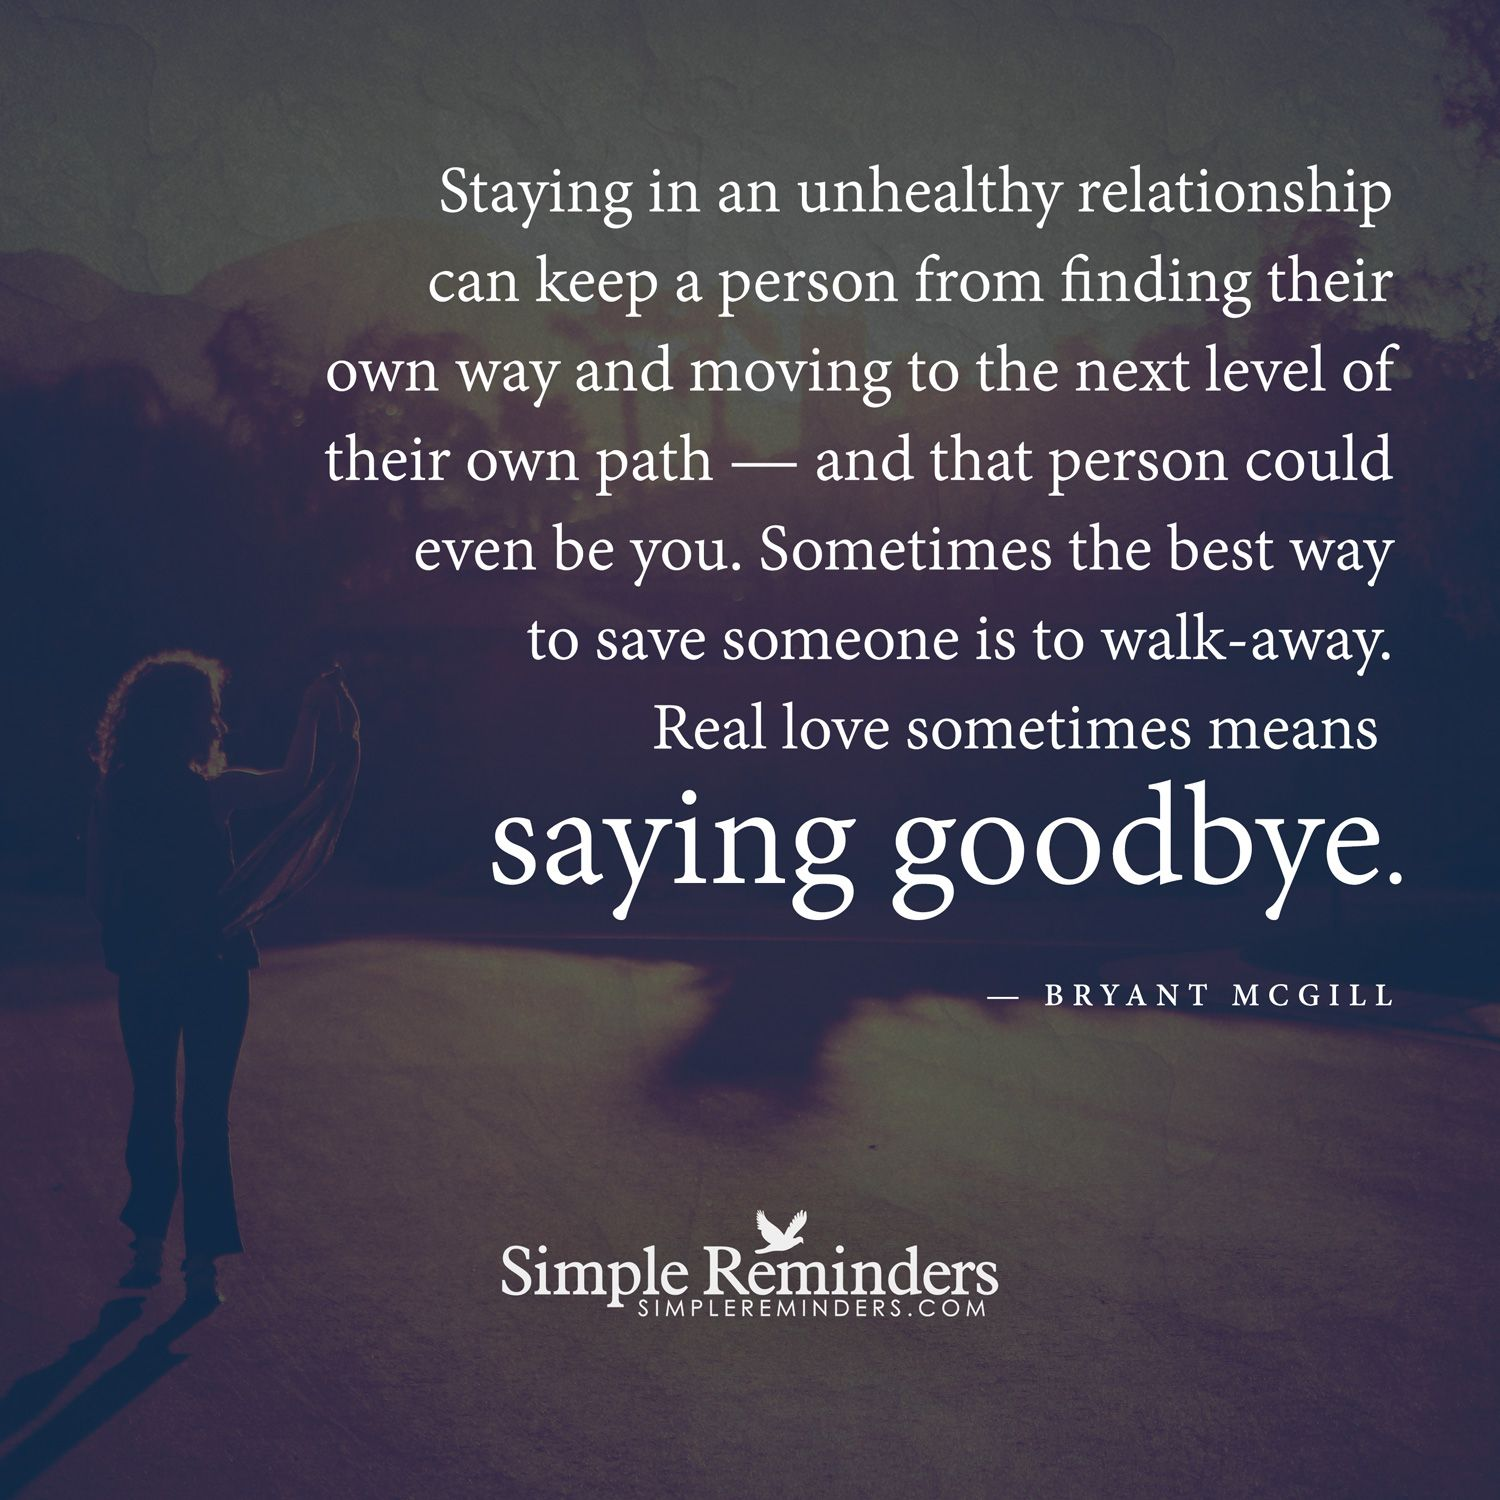 Quotes About Moving On In Life From A Bad Relationship